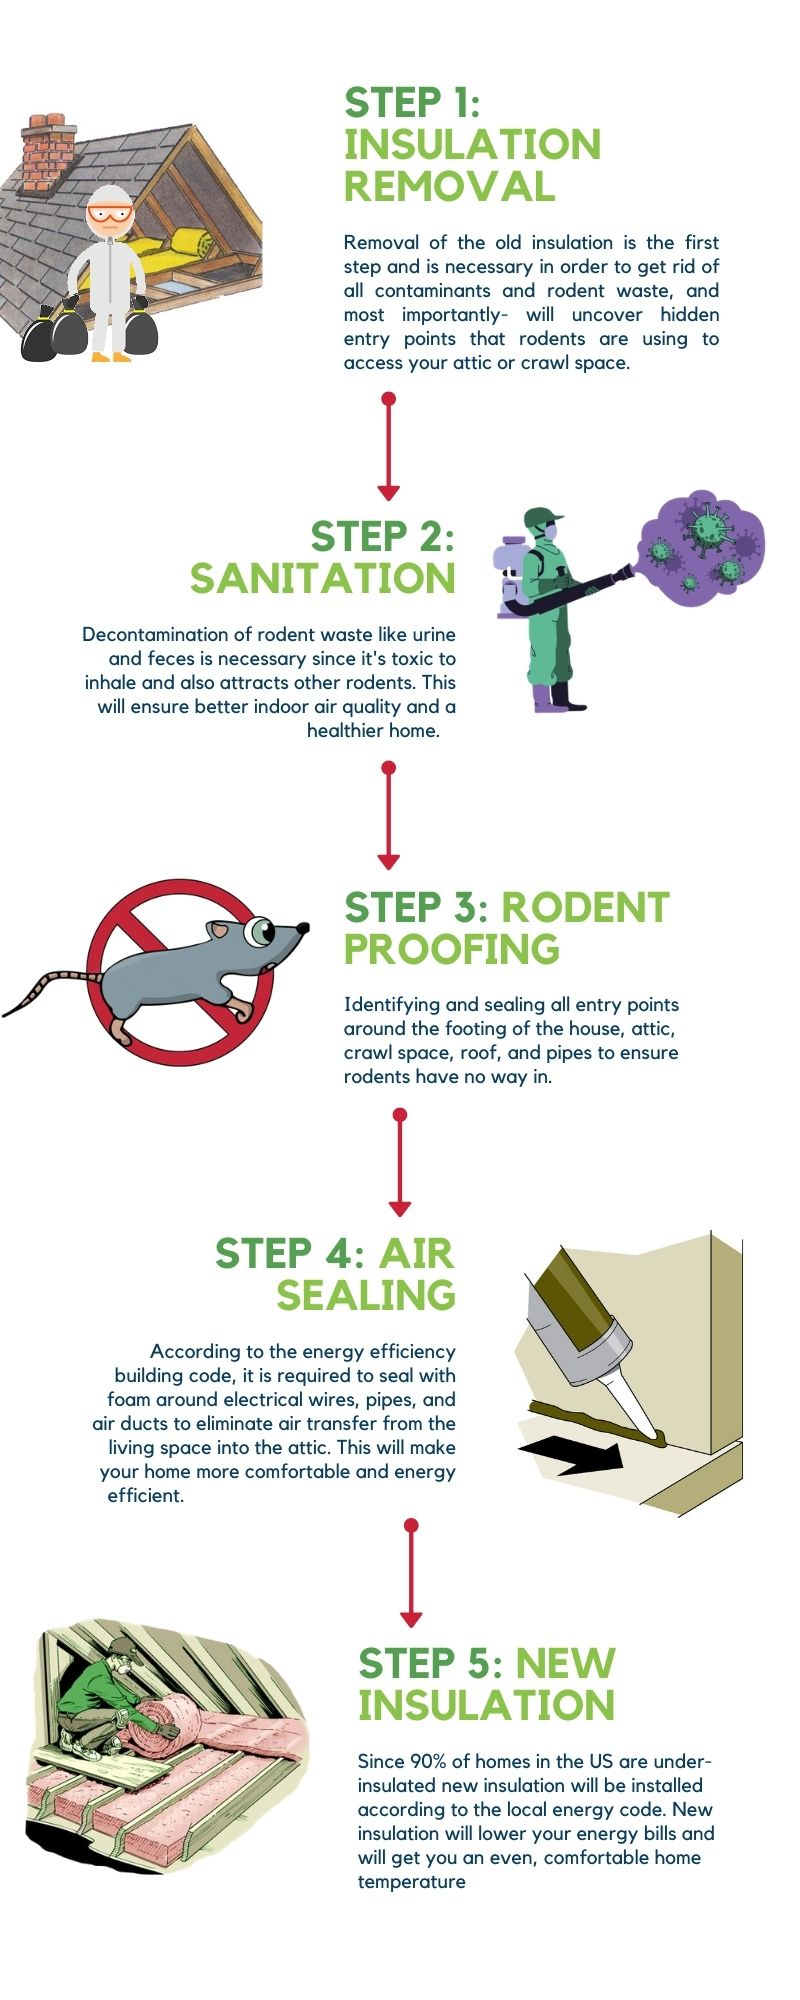 5 steps to get rid of rodents